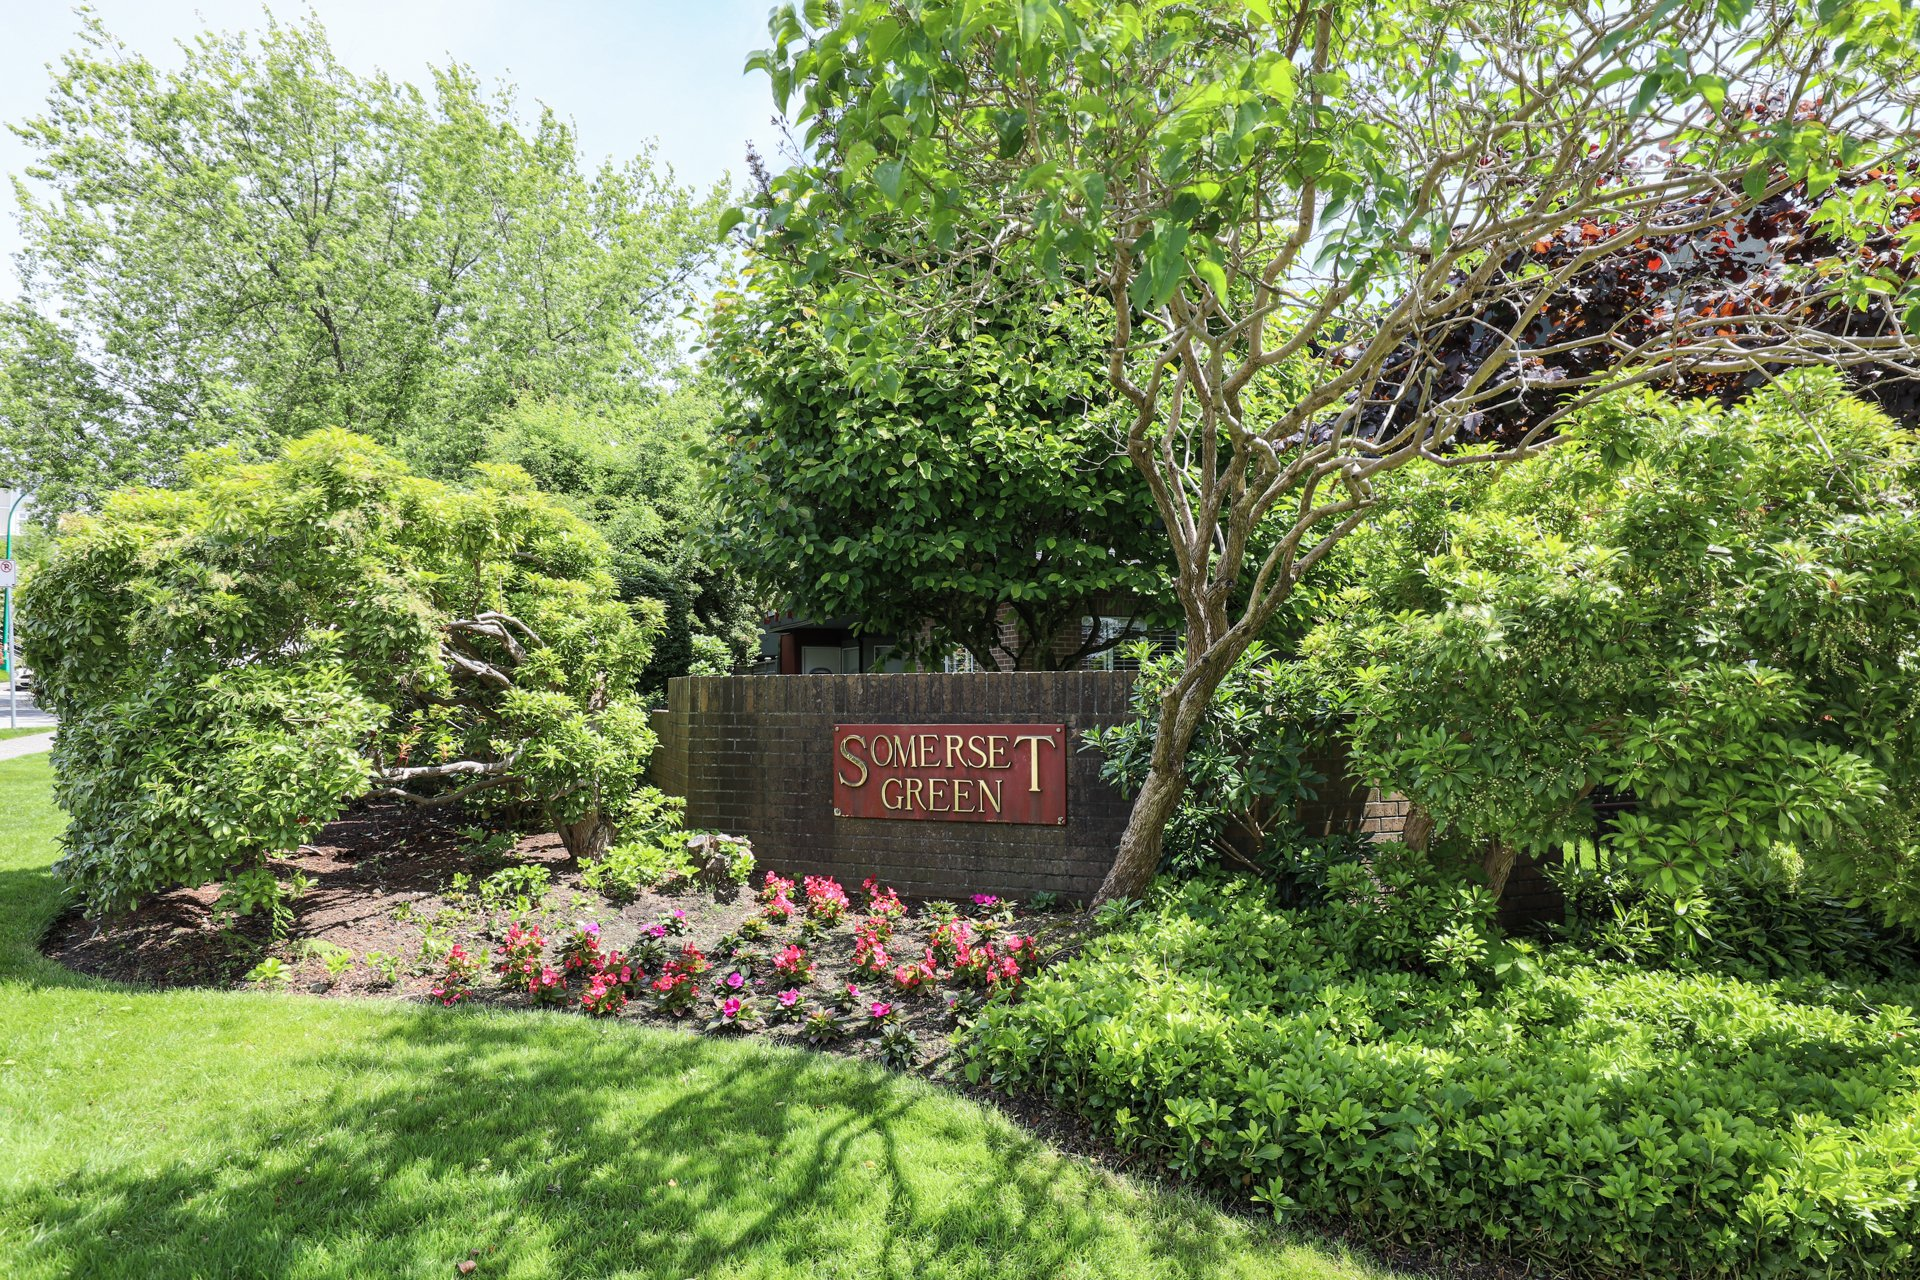 Somerset Green - 2800 Chesterfield |  Condos For Sale + Listing Alerts